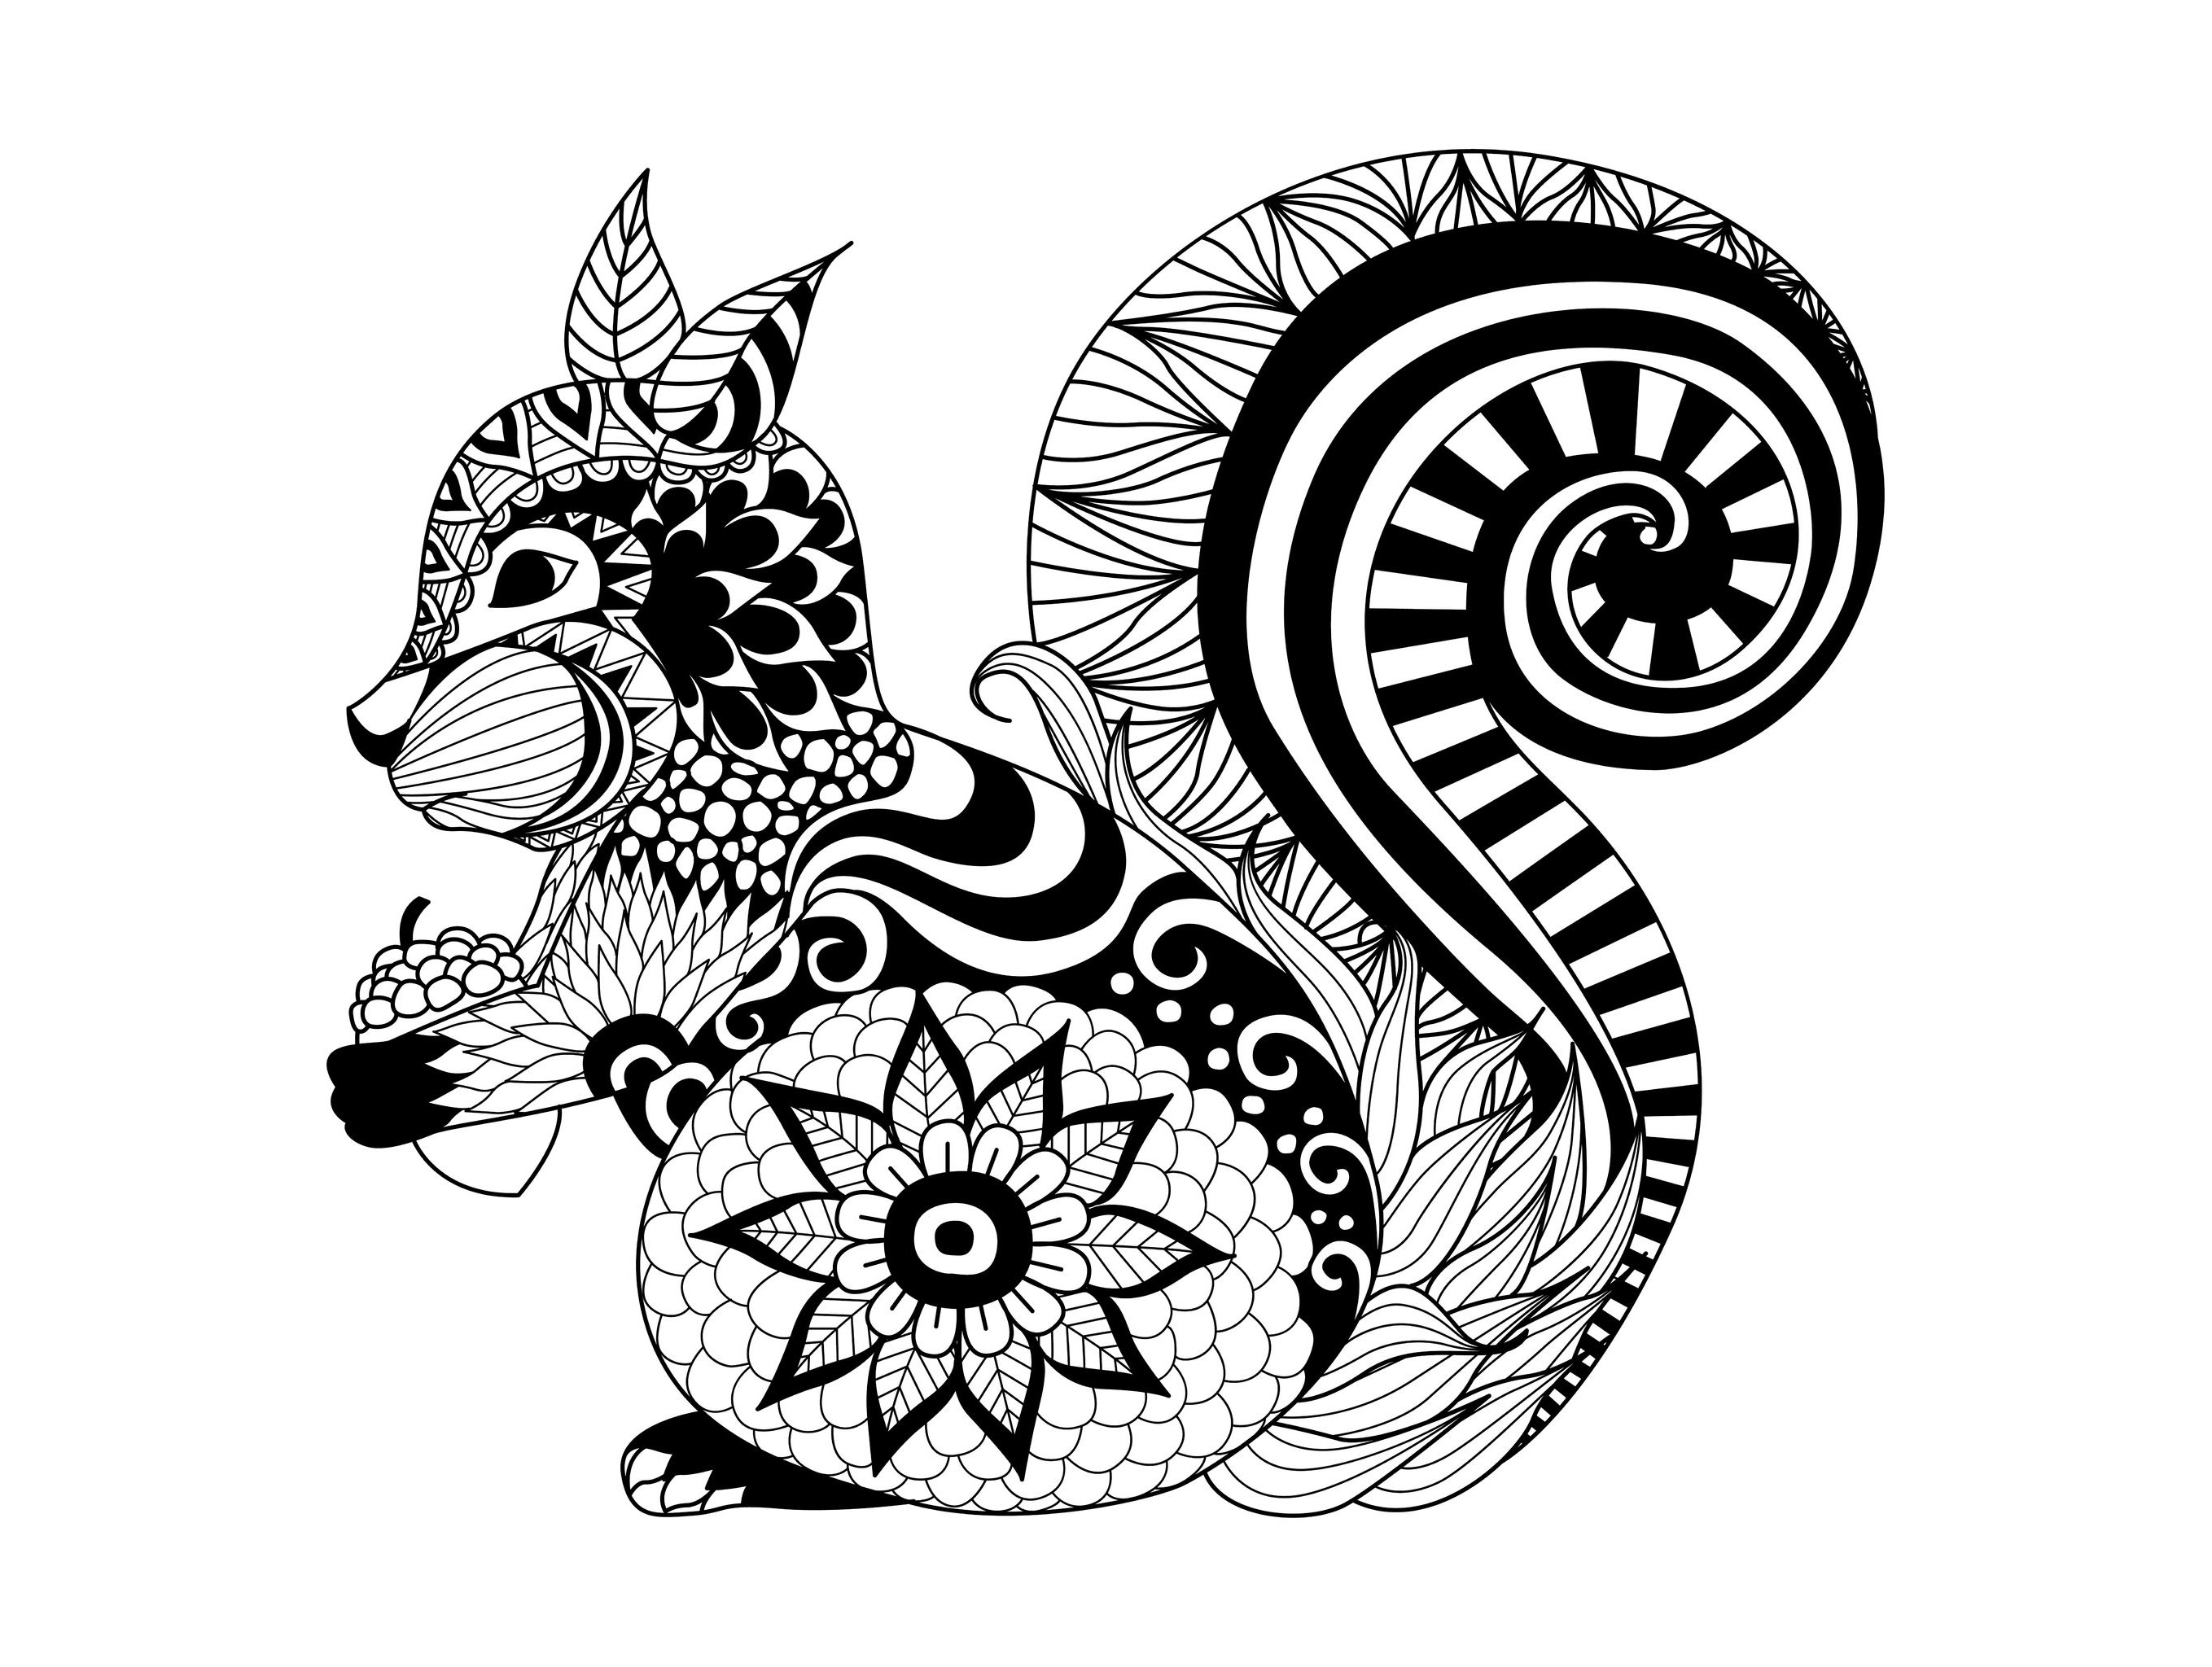 Zentangle squirrel - Squirrels & Rodents Adult Coloring Pages